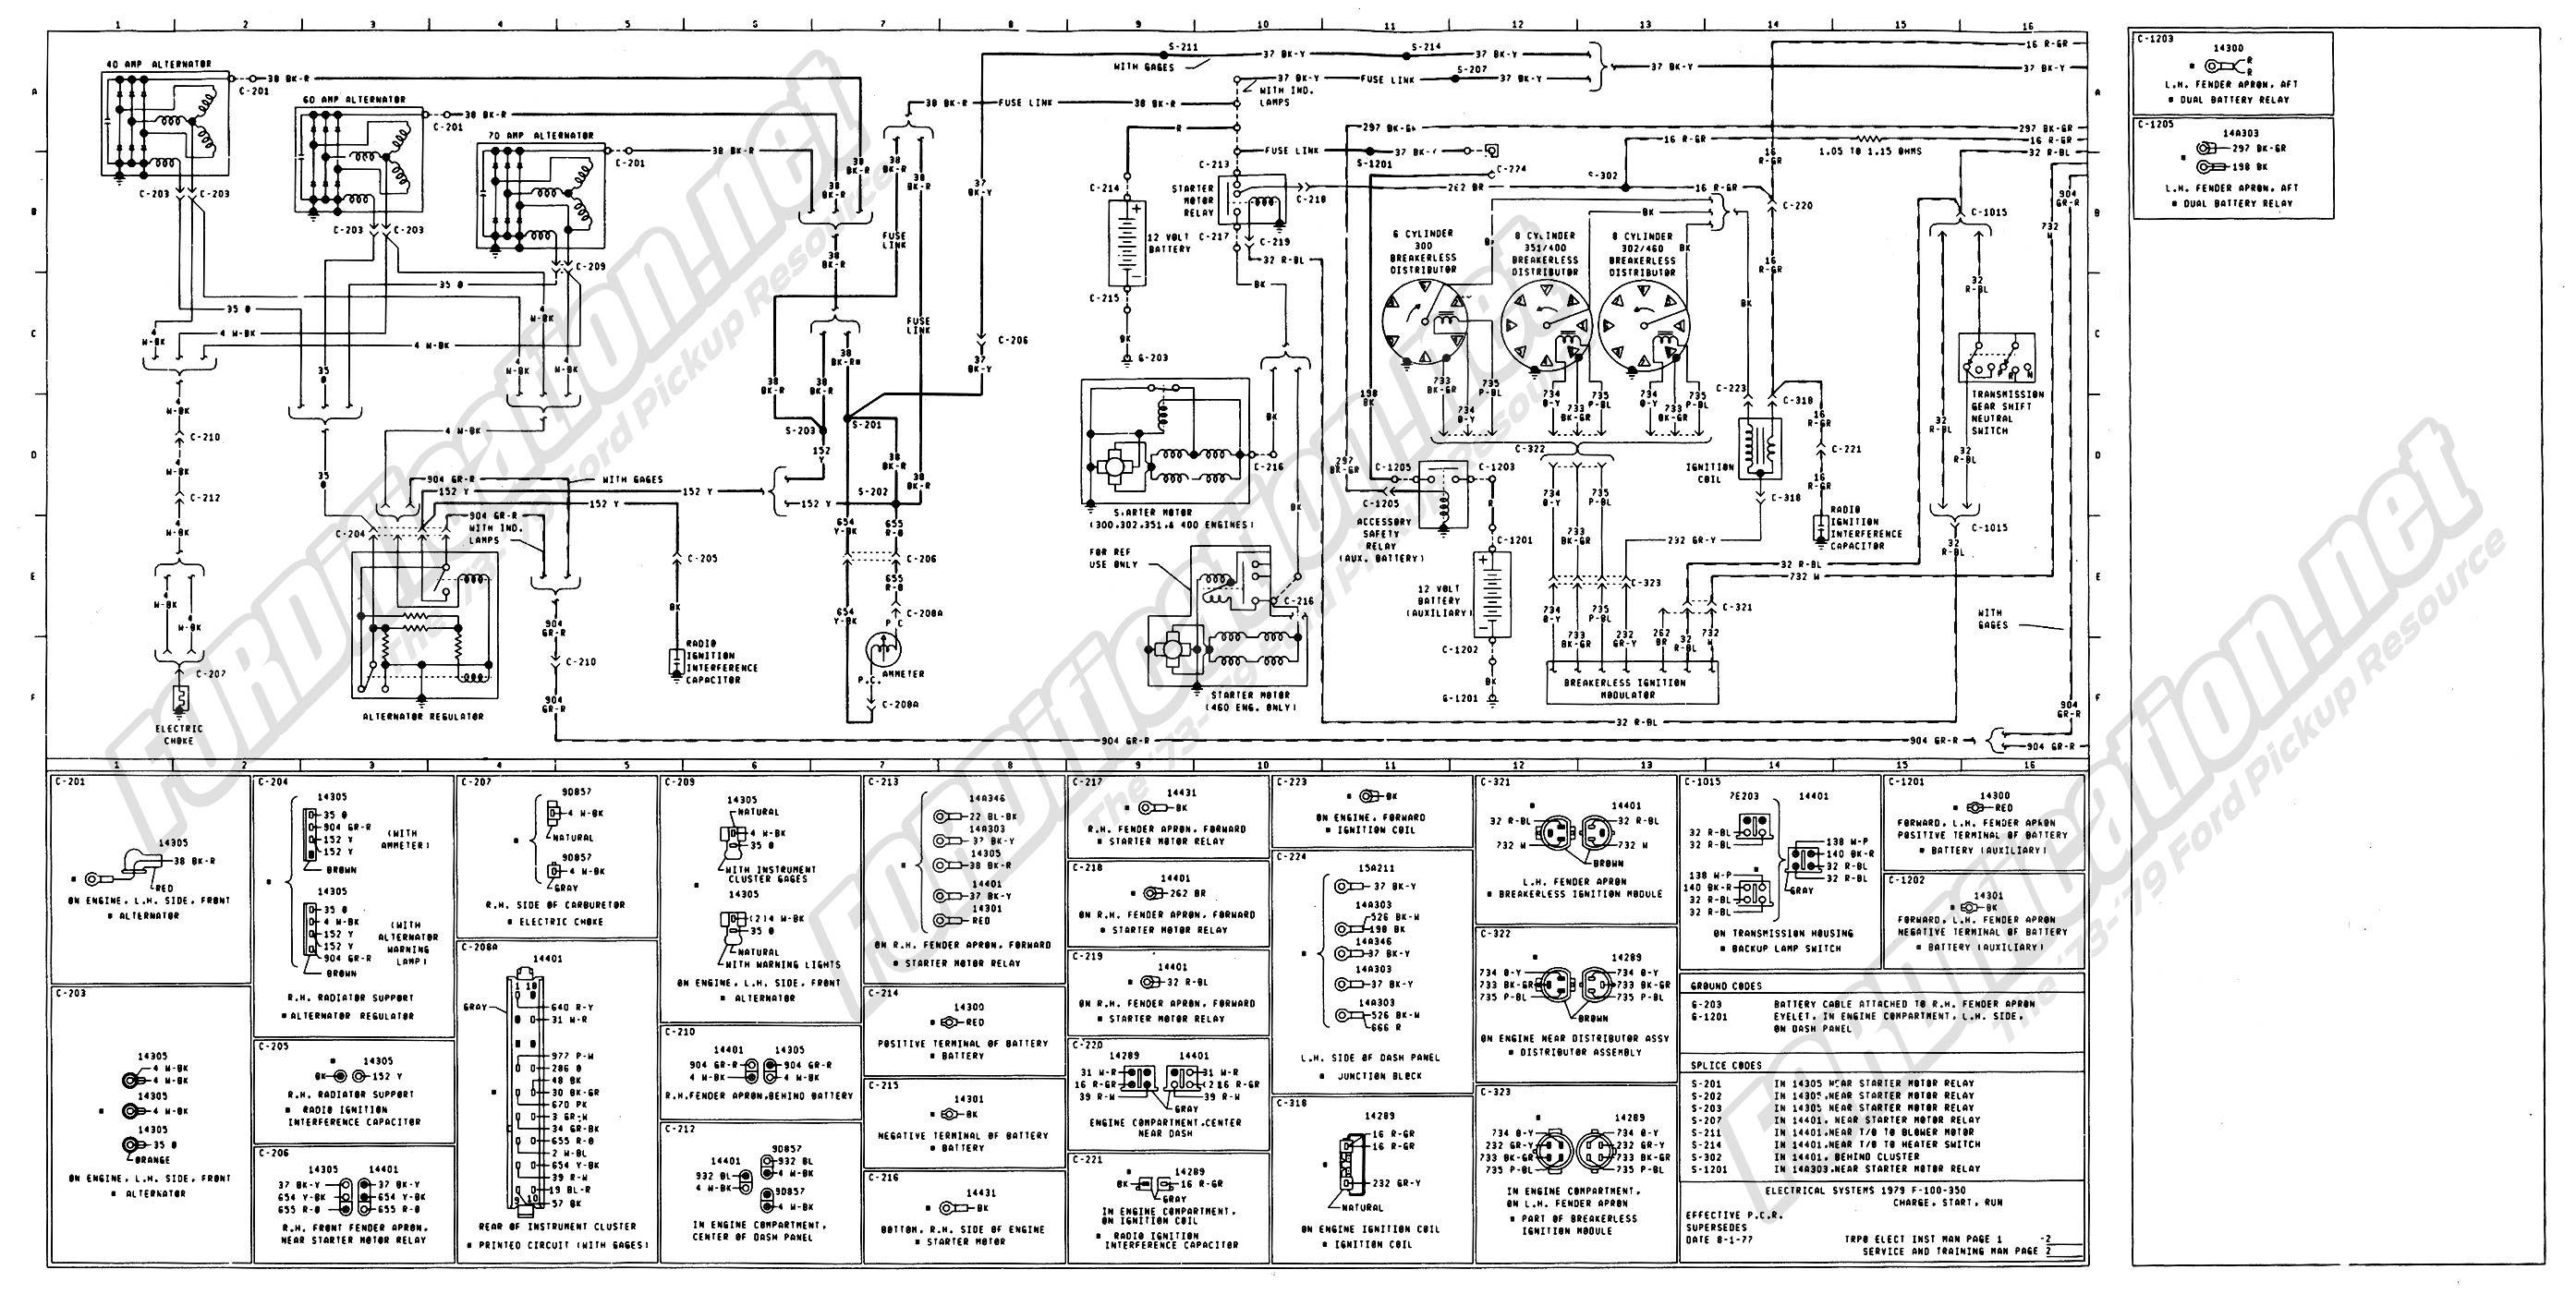 1984 F150 Wiring | Wiring Diagram  Mustang Alternator Wiring Diagram on 71 chevelle alternator wiring, 93 mustang alternator wiring, 86 mustang alternator wiring, 87 mustang alternator wiring, 98 mustang alternator wiring, 89 mustang alternator wiring, 68 camaro alternator wiring,